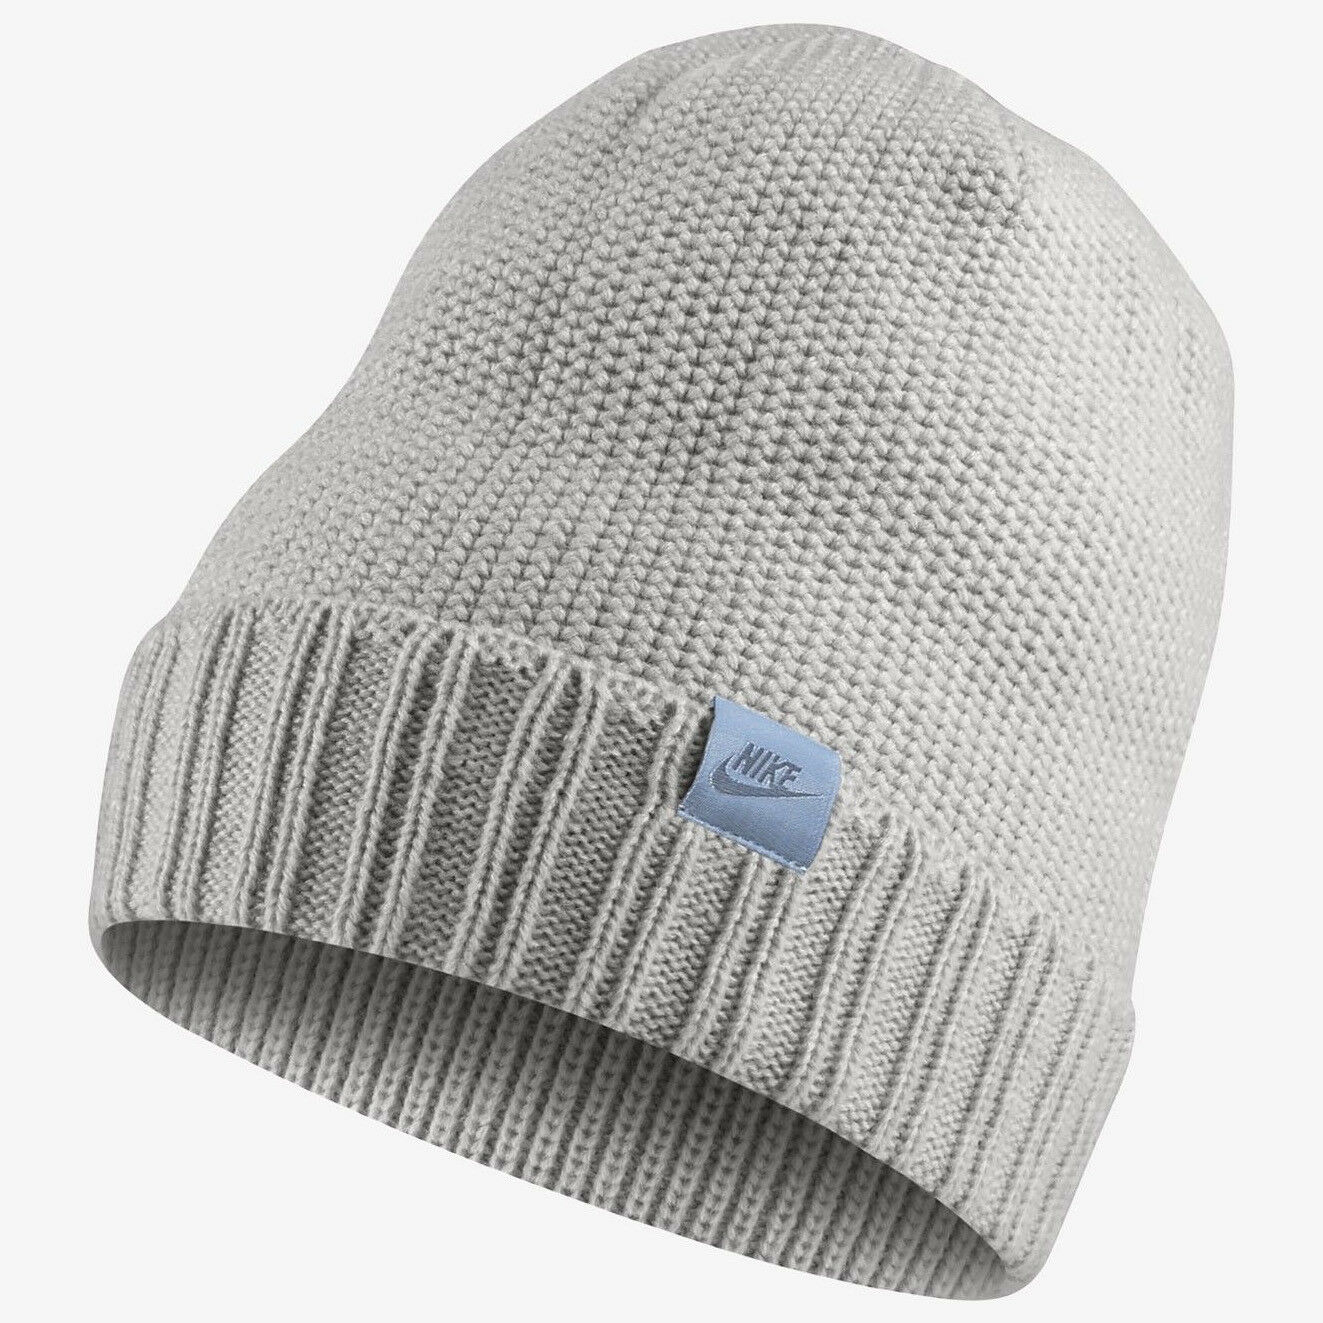 54bb1f74e1d Nike Unisex Honeycomb Pom Knit Beanie for sale online